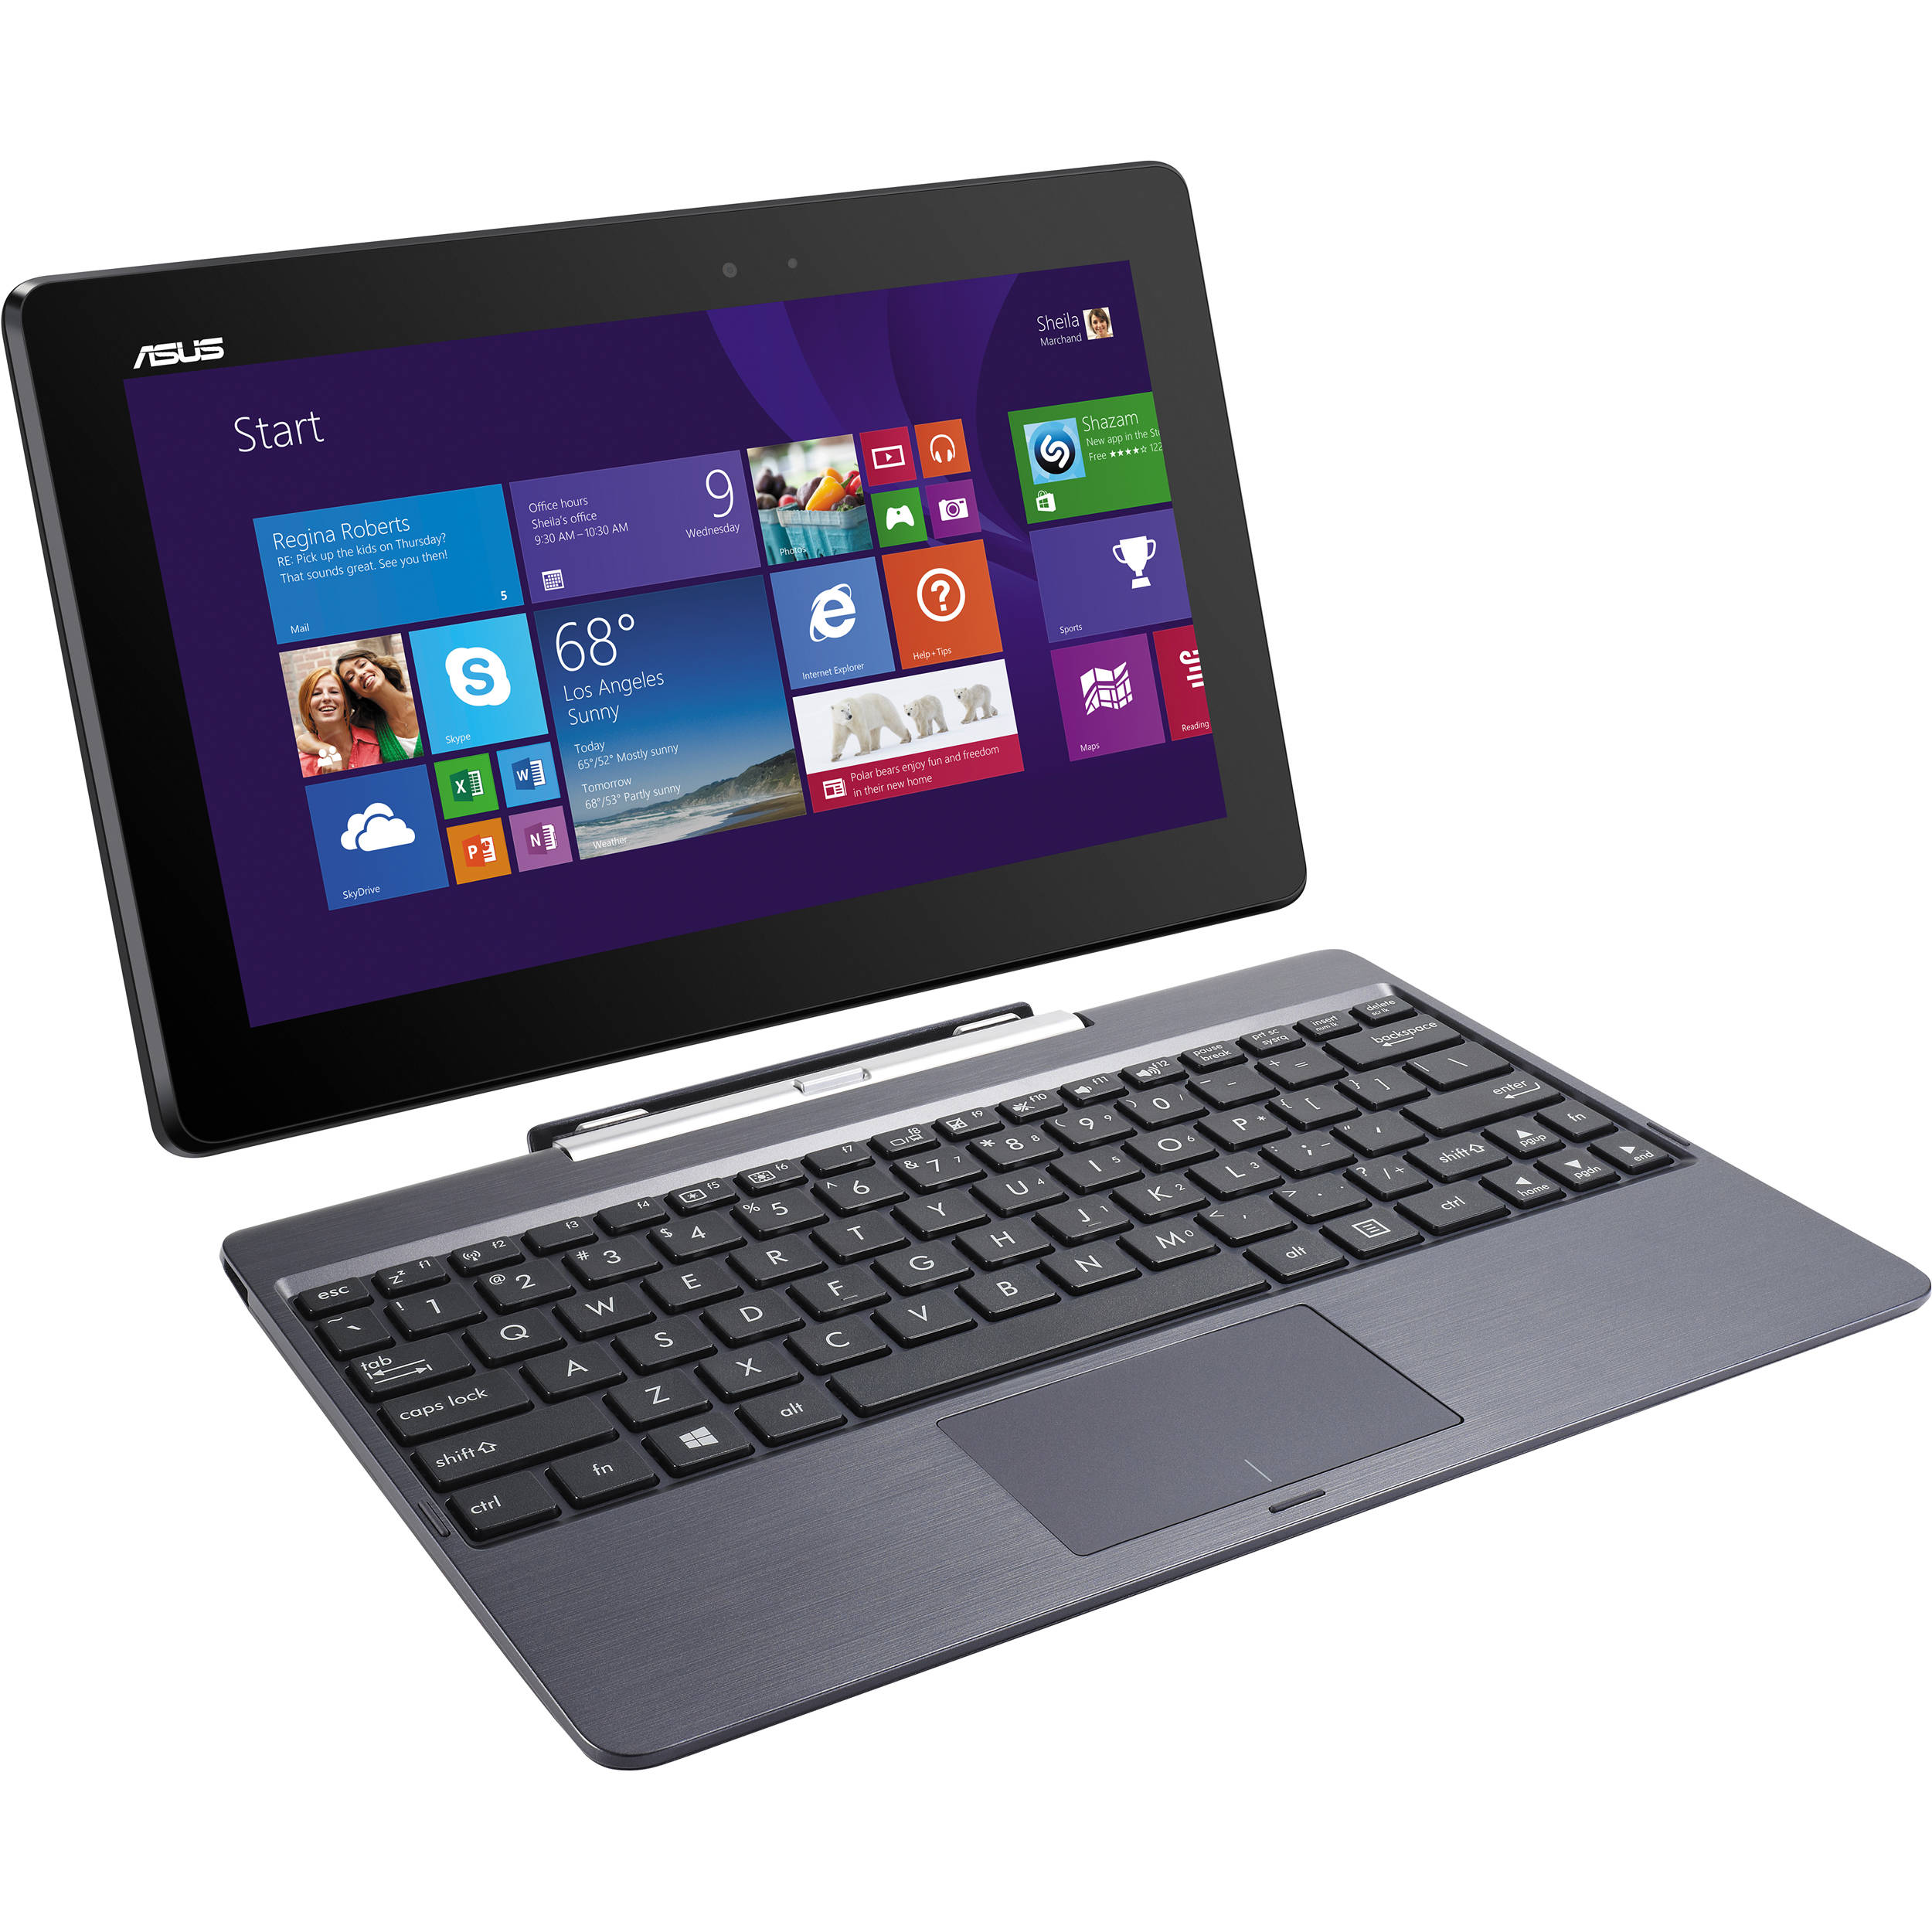 ASUS 32GB eMMC & 500GB HDD T100 Series Transformer Book Gray